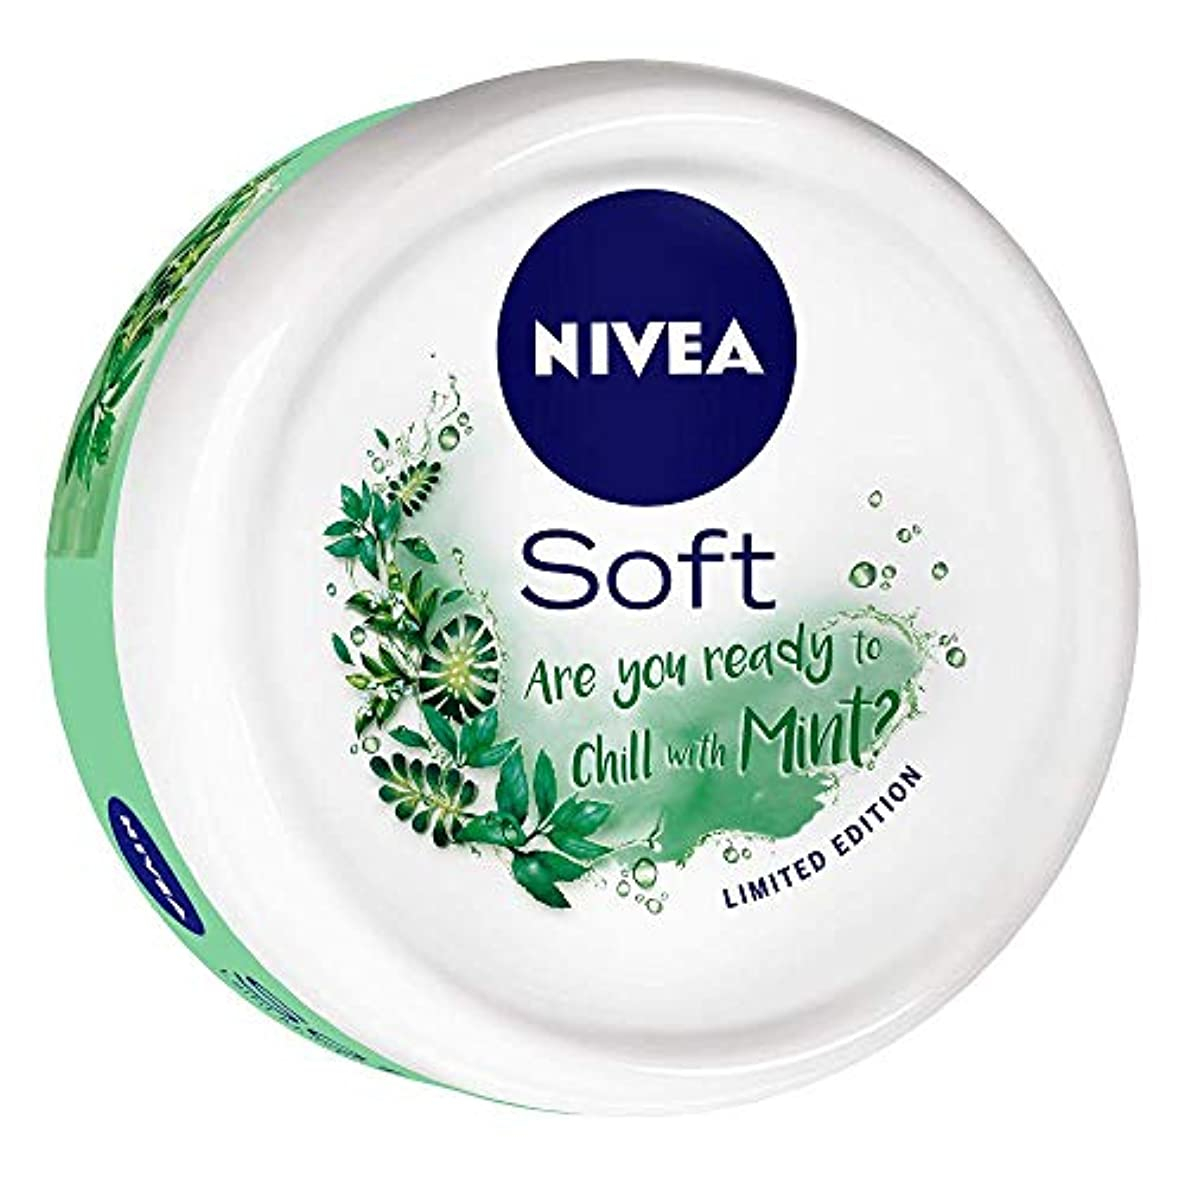 シールド喉頭疑いNIVEA Soft Light Moisturizer Chilled Mint With Vitamin E & Jojoba Oil, 50 ml